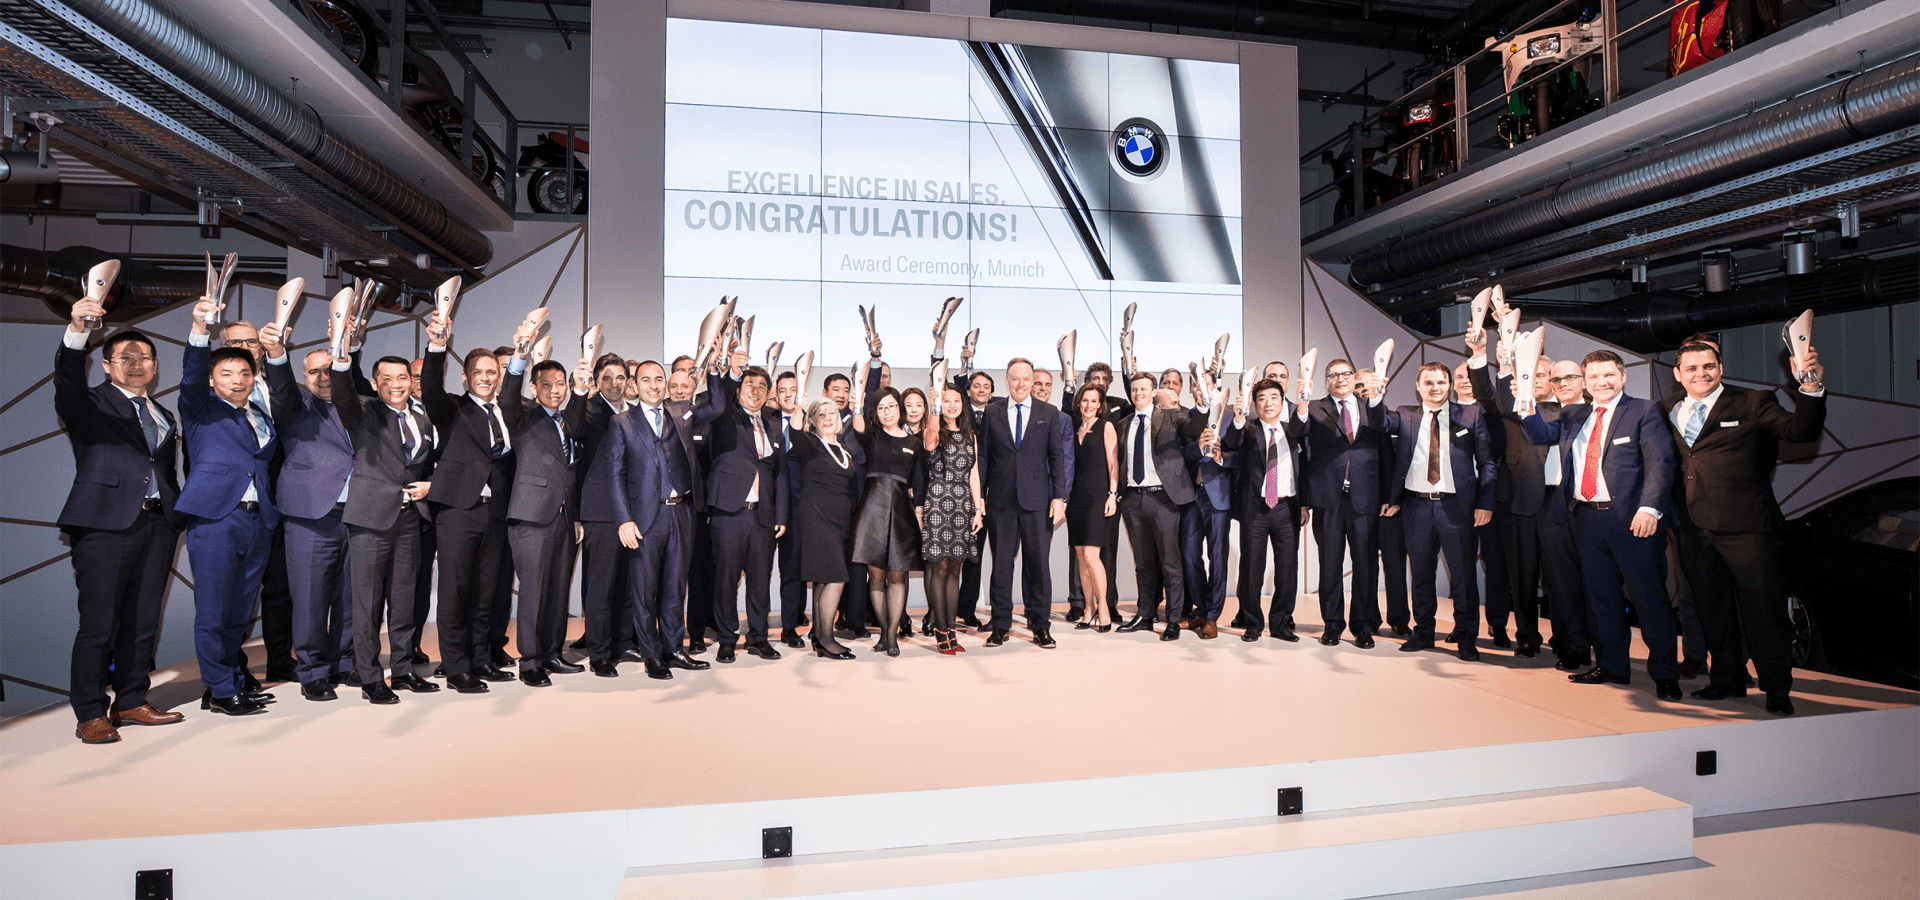 BMW Excellence in Sales award 2017